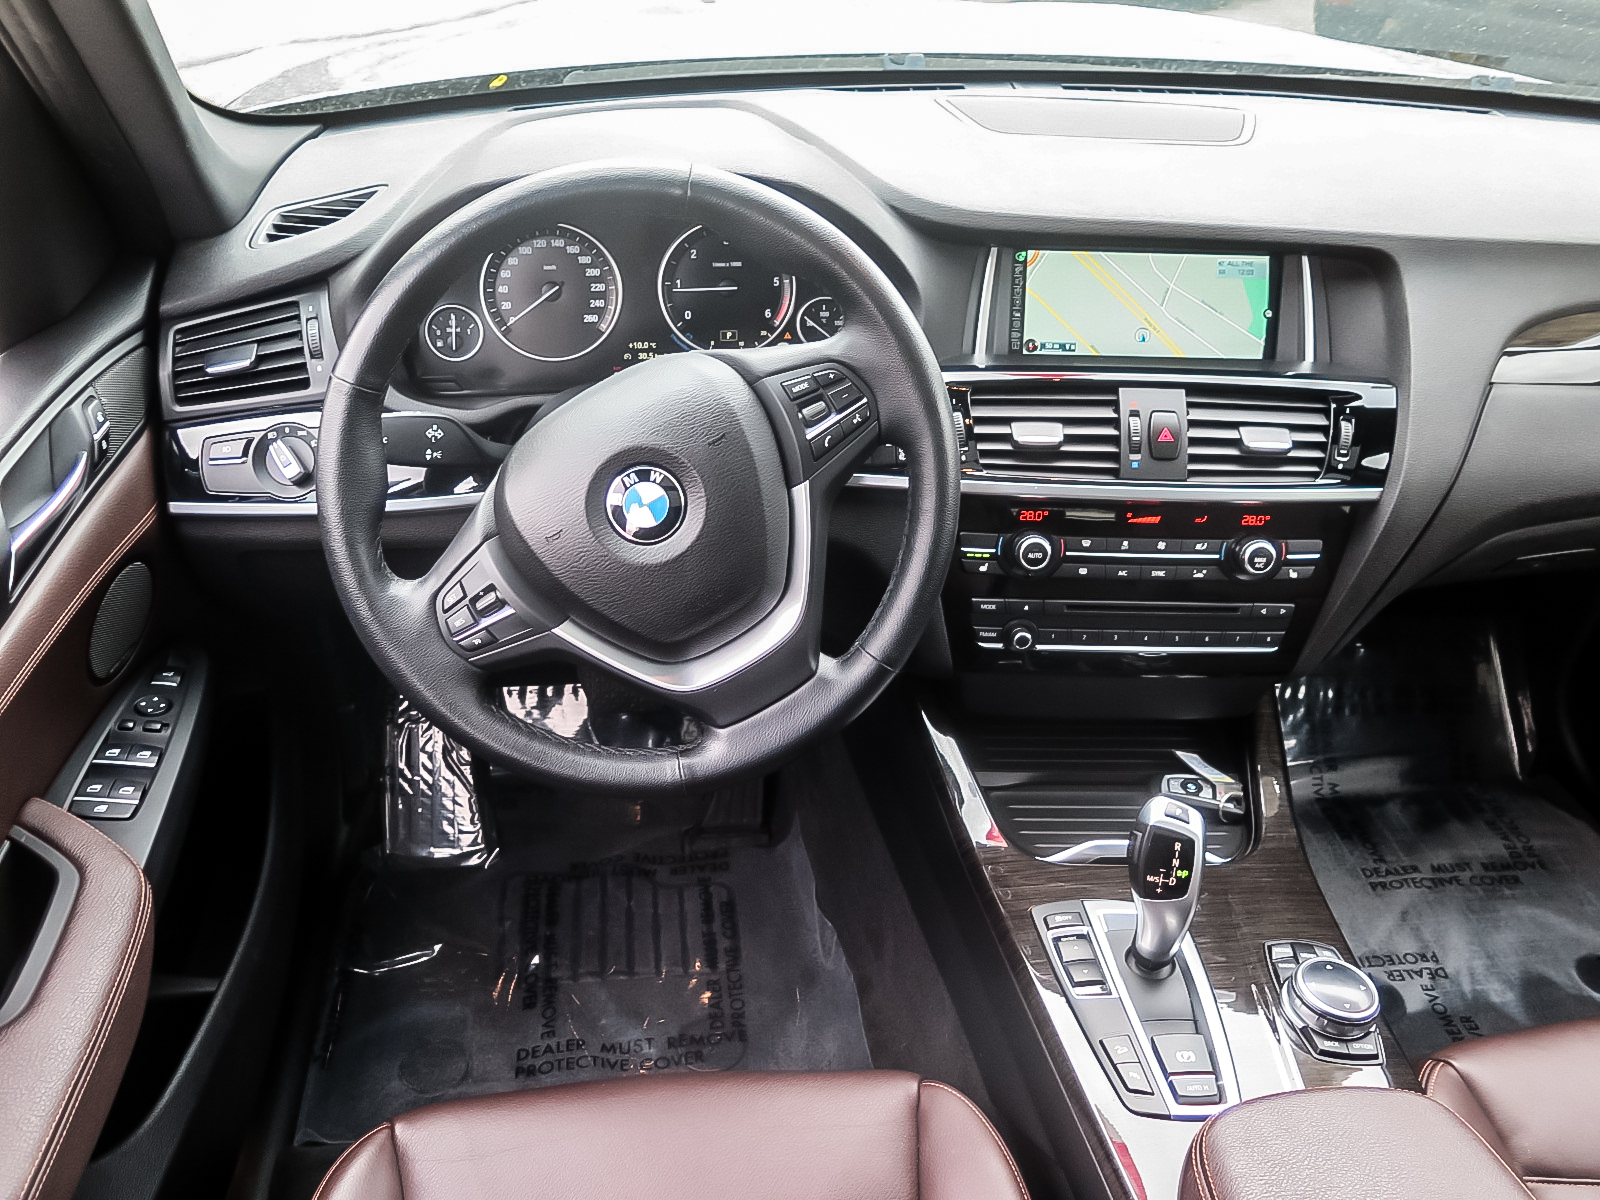 used 2015 BMW X3 car, priced at $24,490